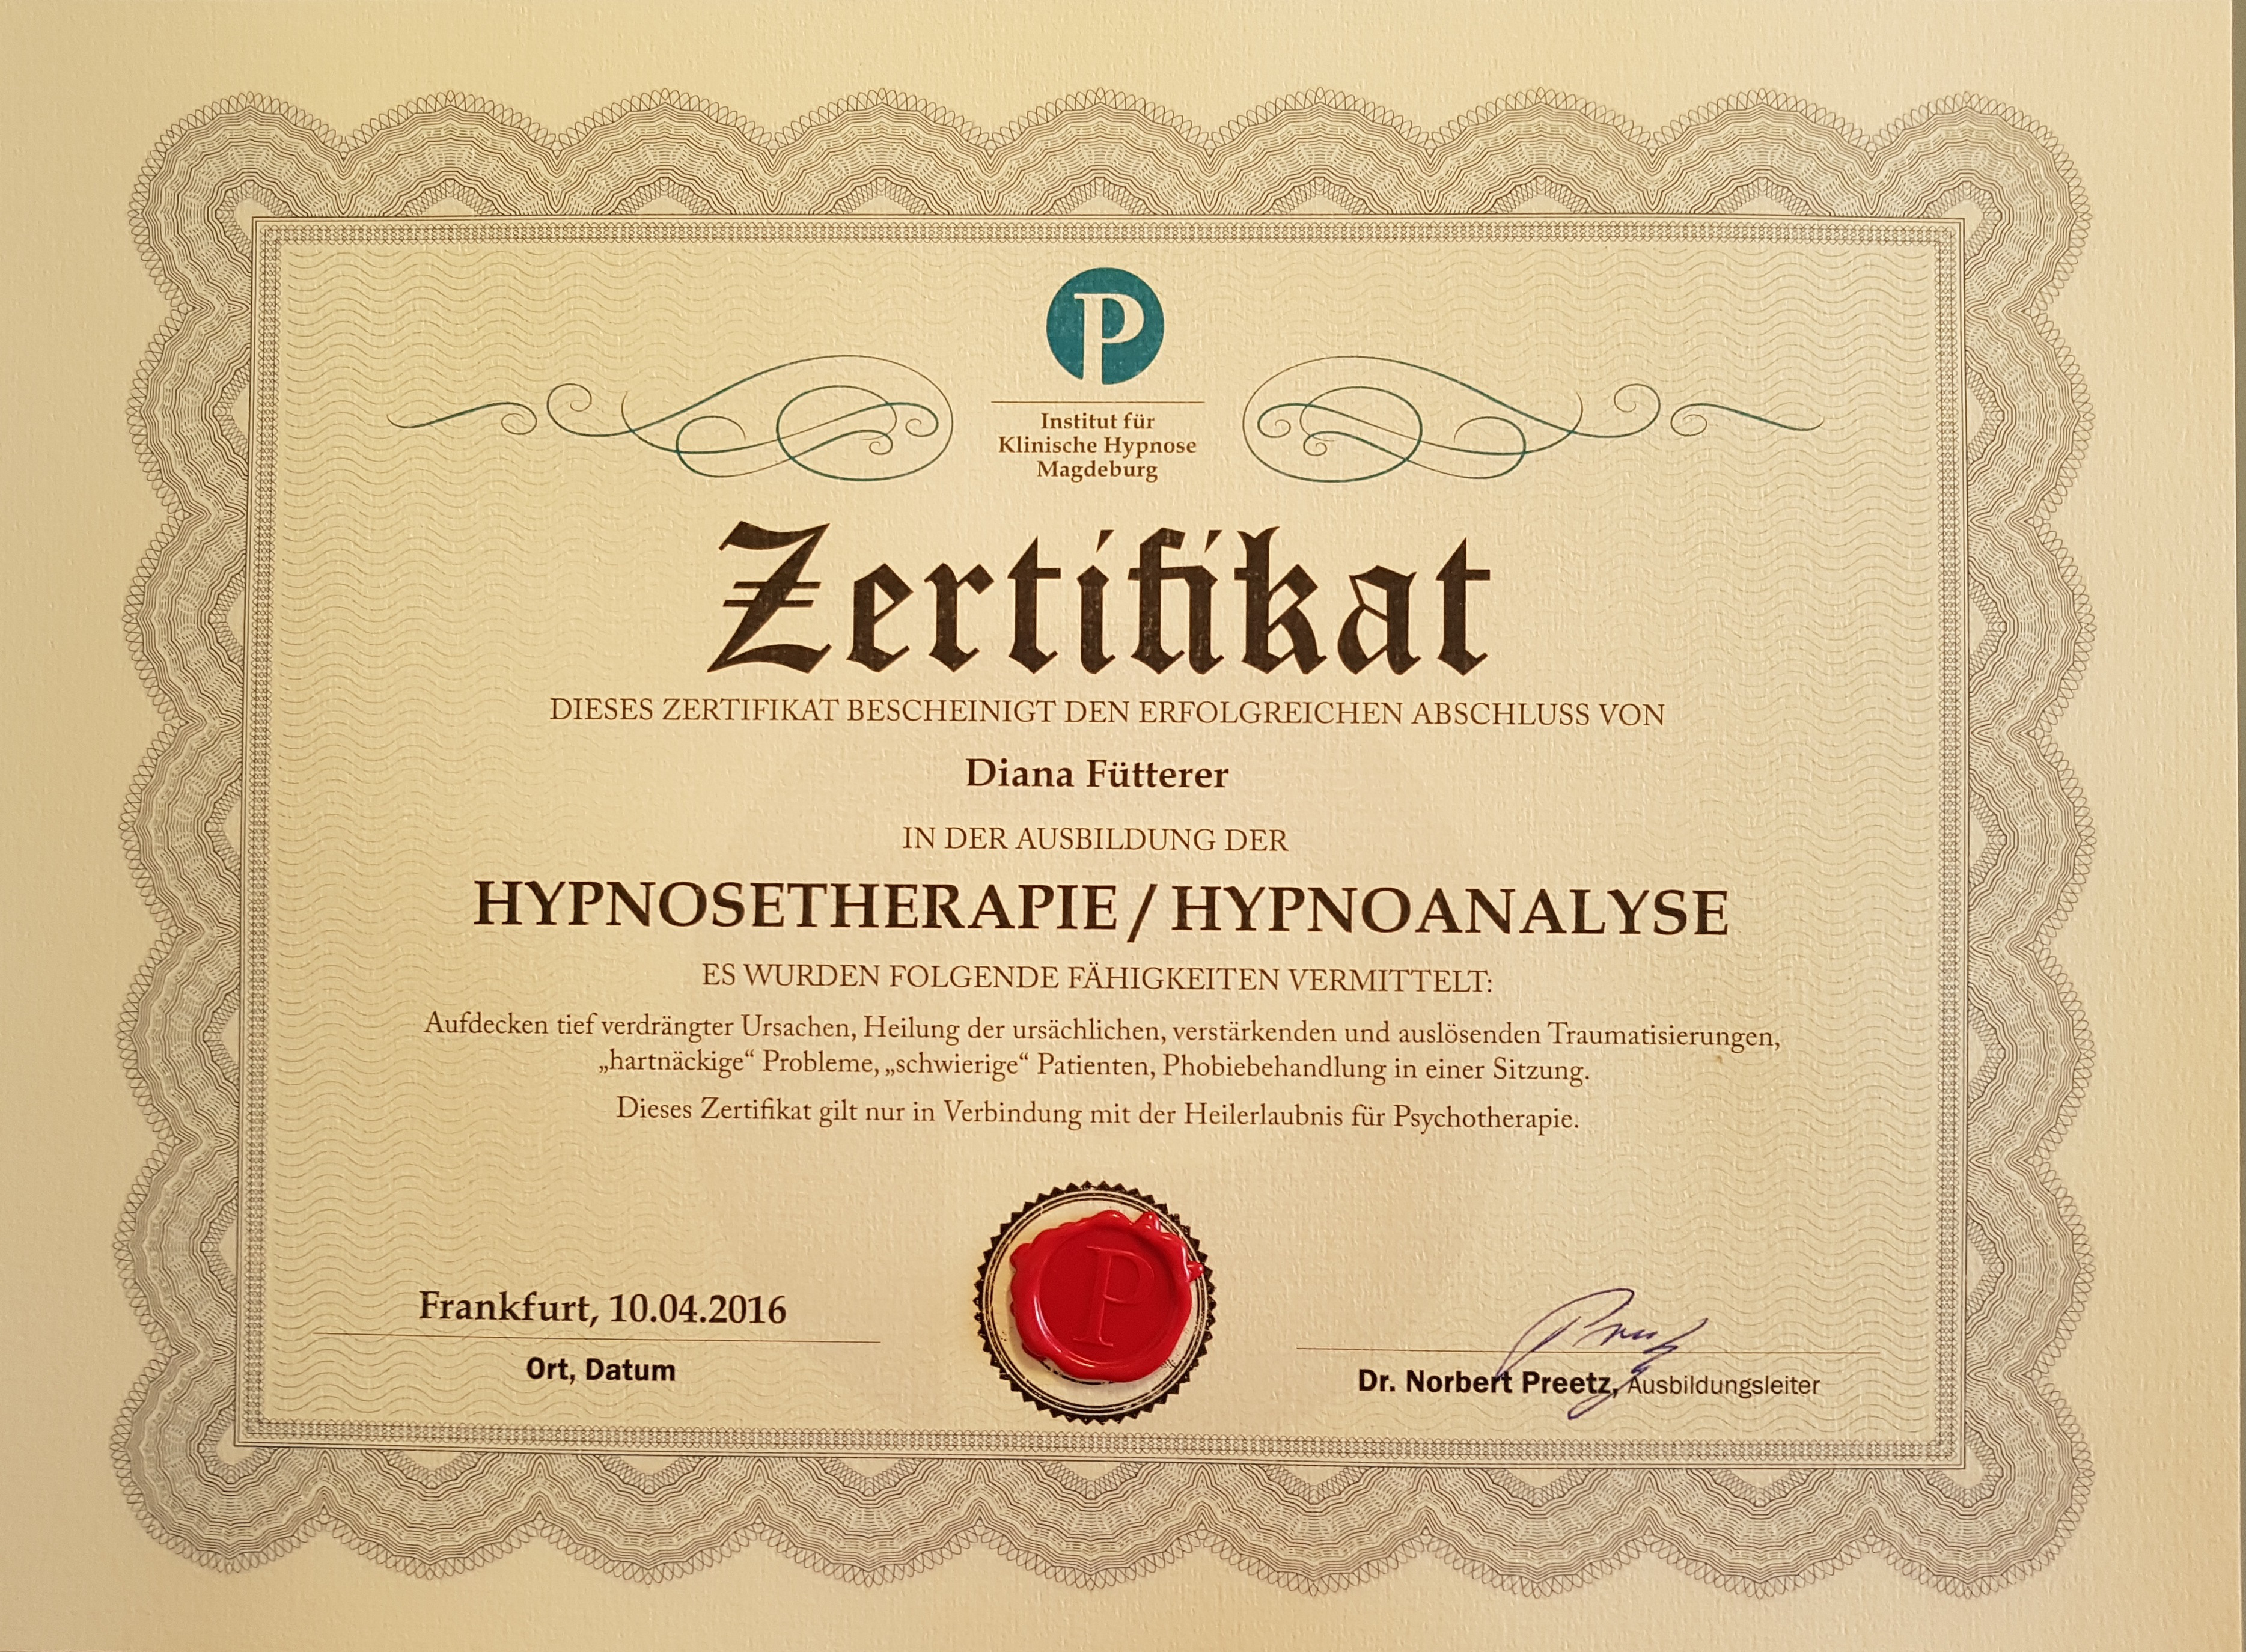 Hypnose Worms hypnose worms heilerin worms yager code therapie angstfrei